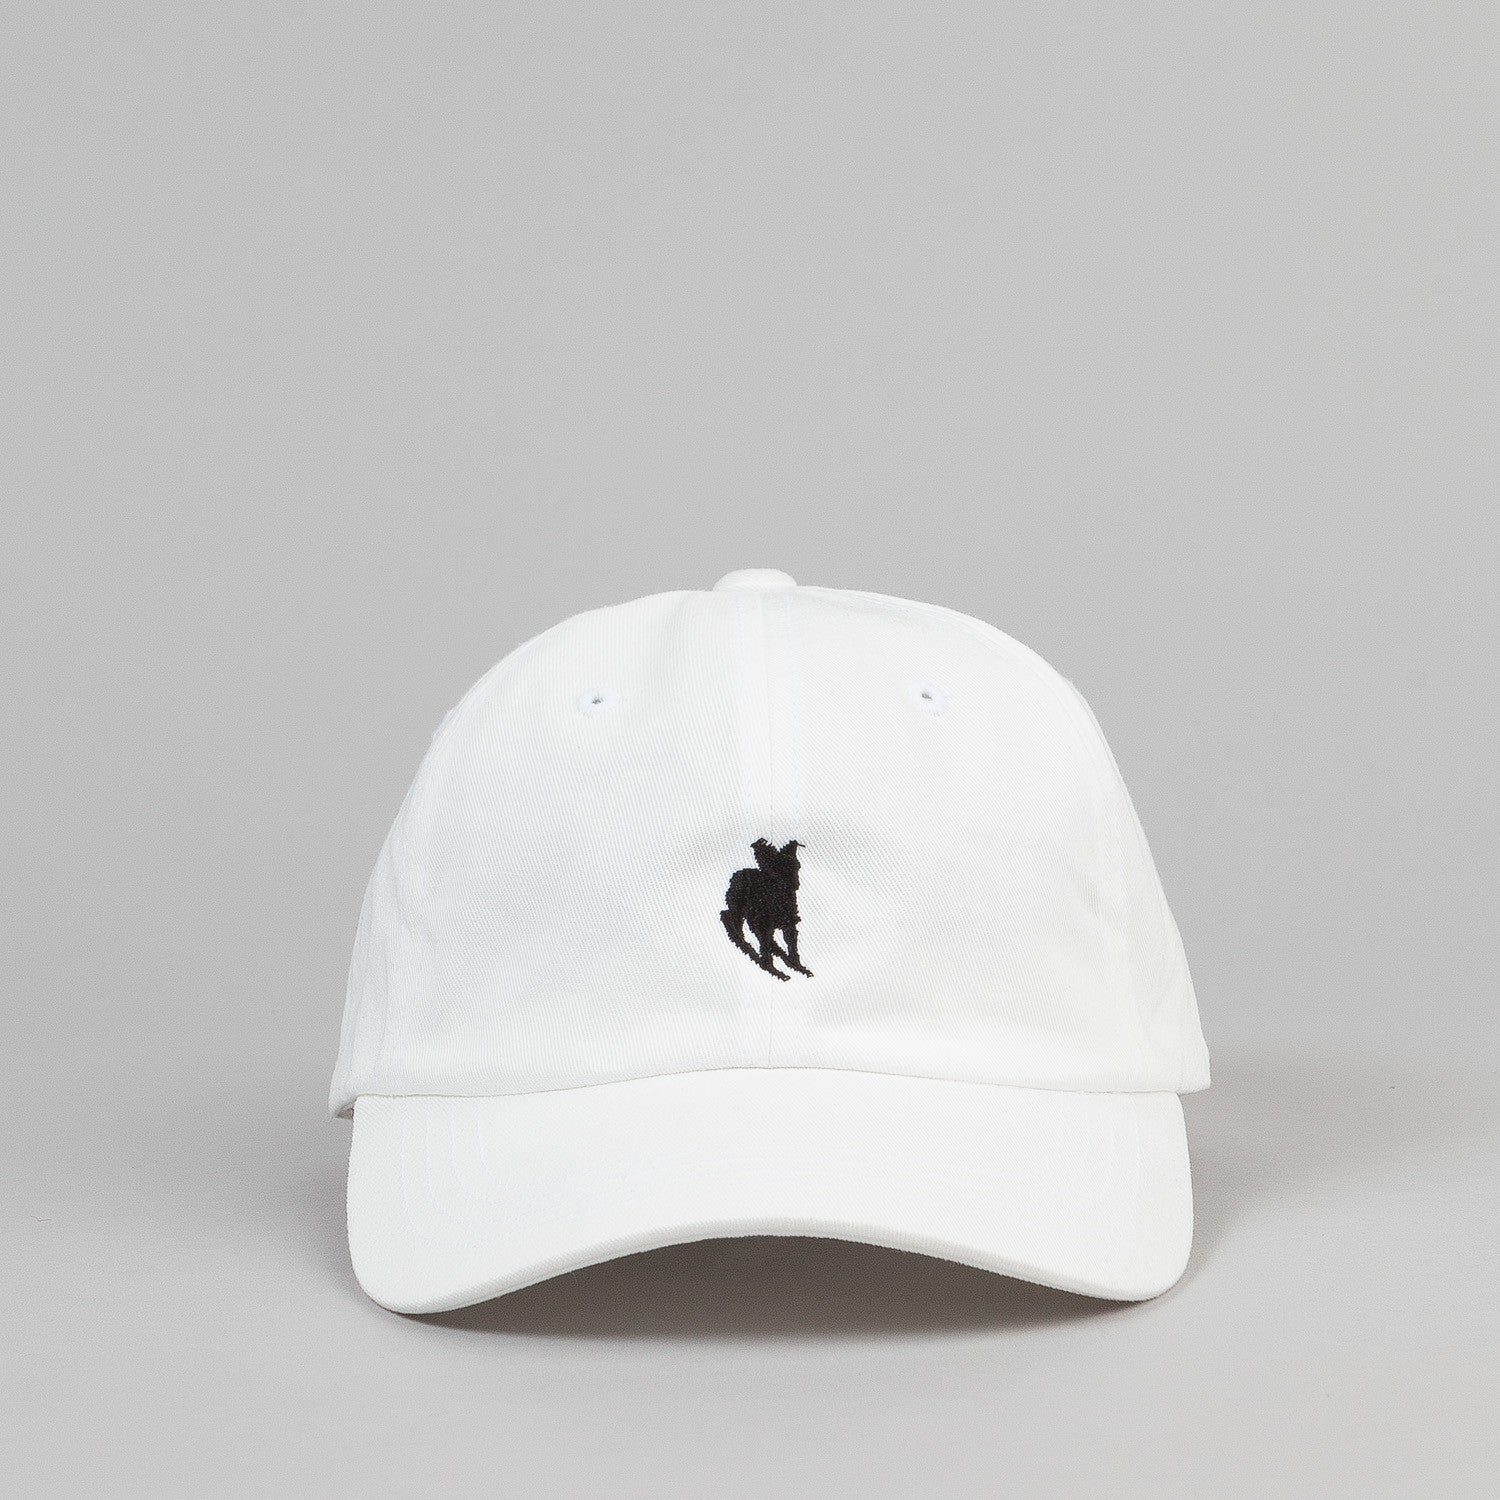 Welcome Rocking Dog Slider Cap - White / Black